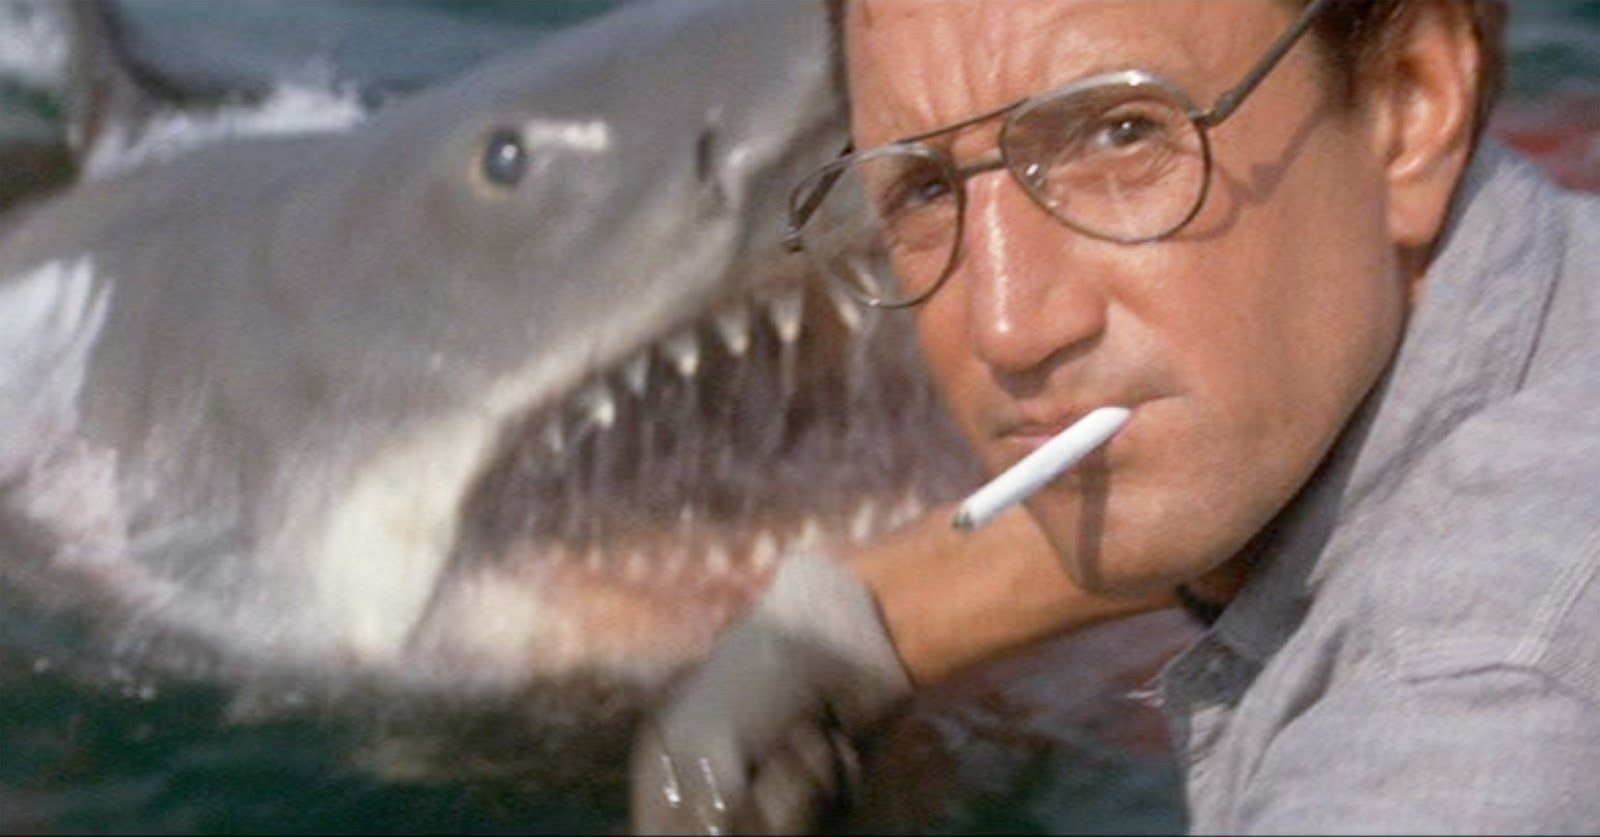 """Roy Scheider as """"Chief Martin Brody"""" telling the crew they're gonna need a bigger boat in 'Jaws'"""